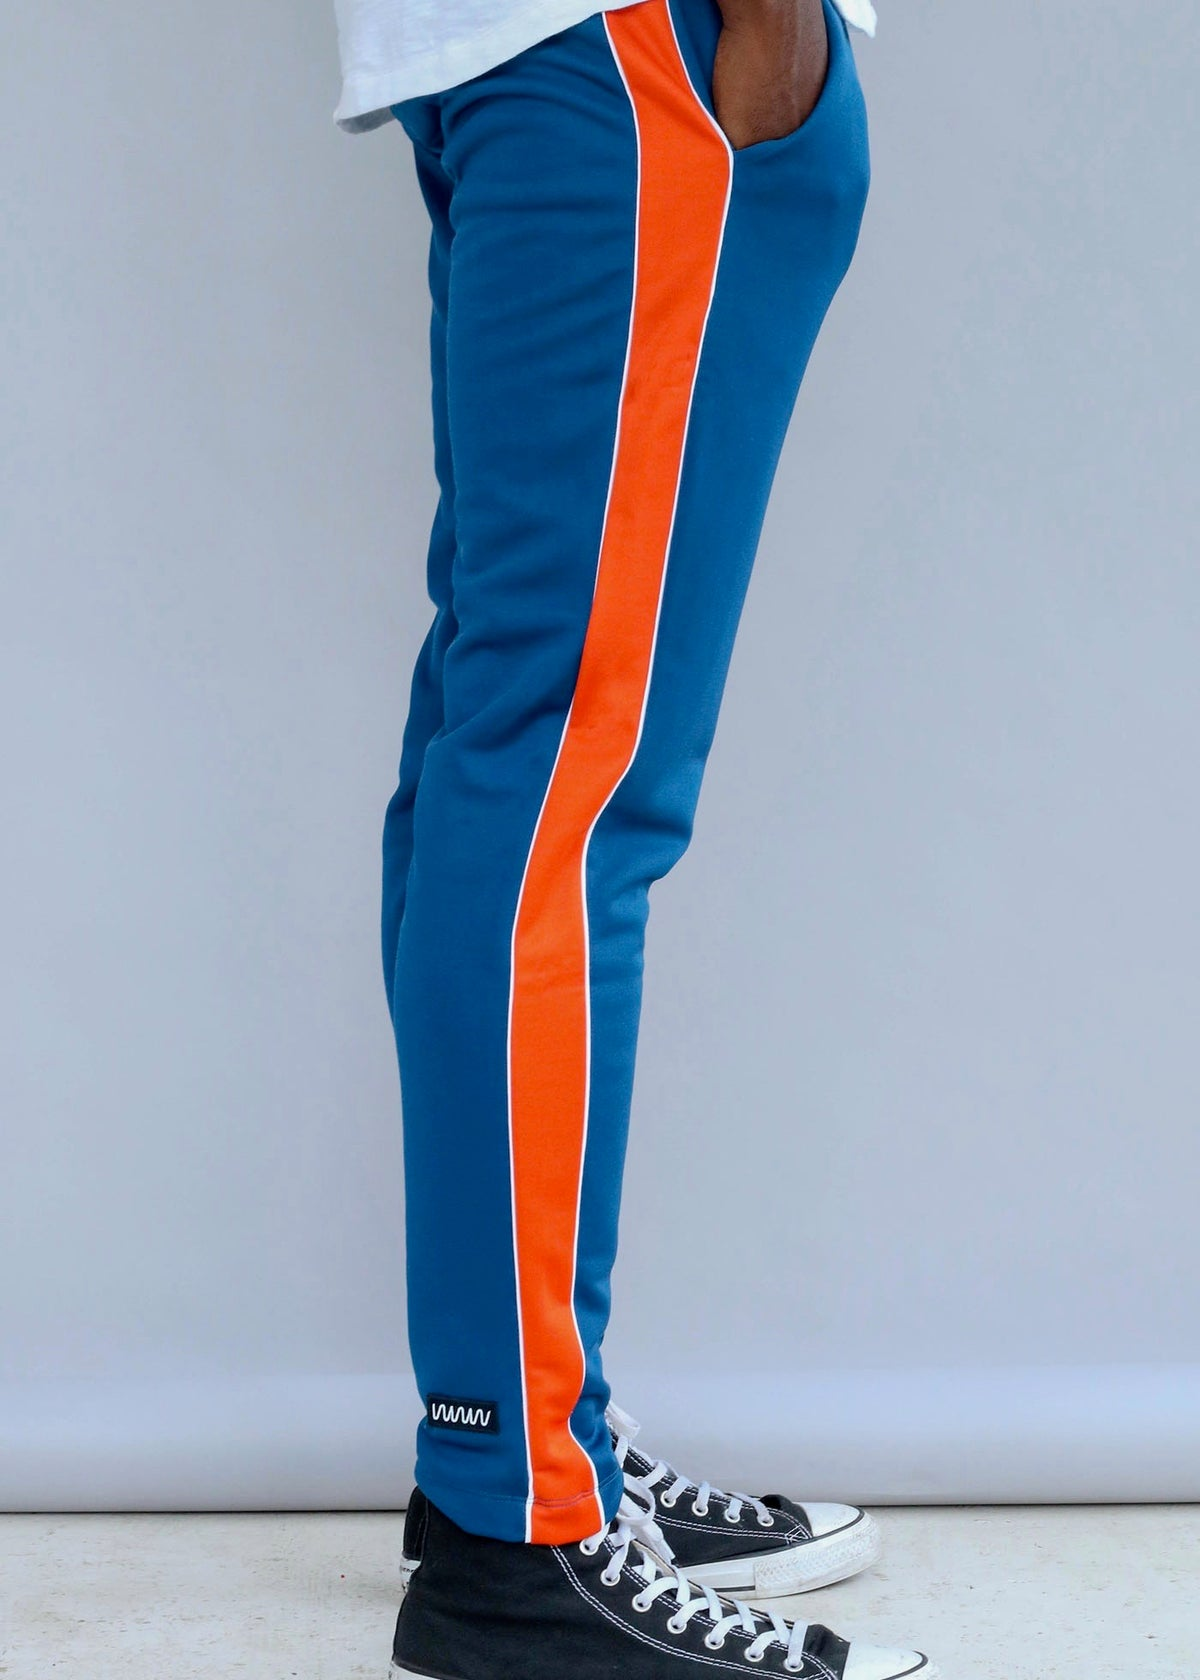 Orange and blue Vertical Tracksuit Pants featuring an adjustable waist from What We Wear